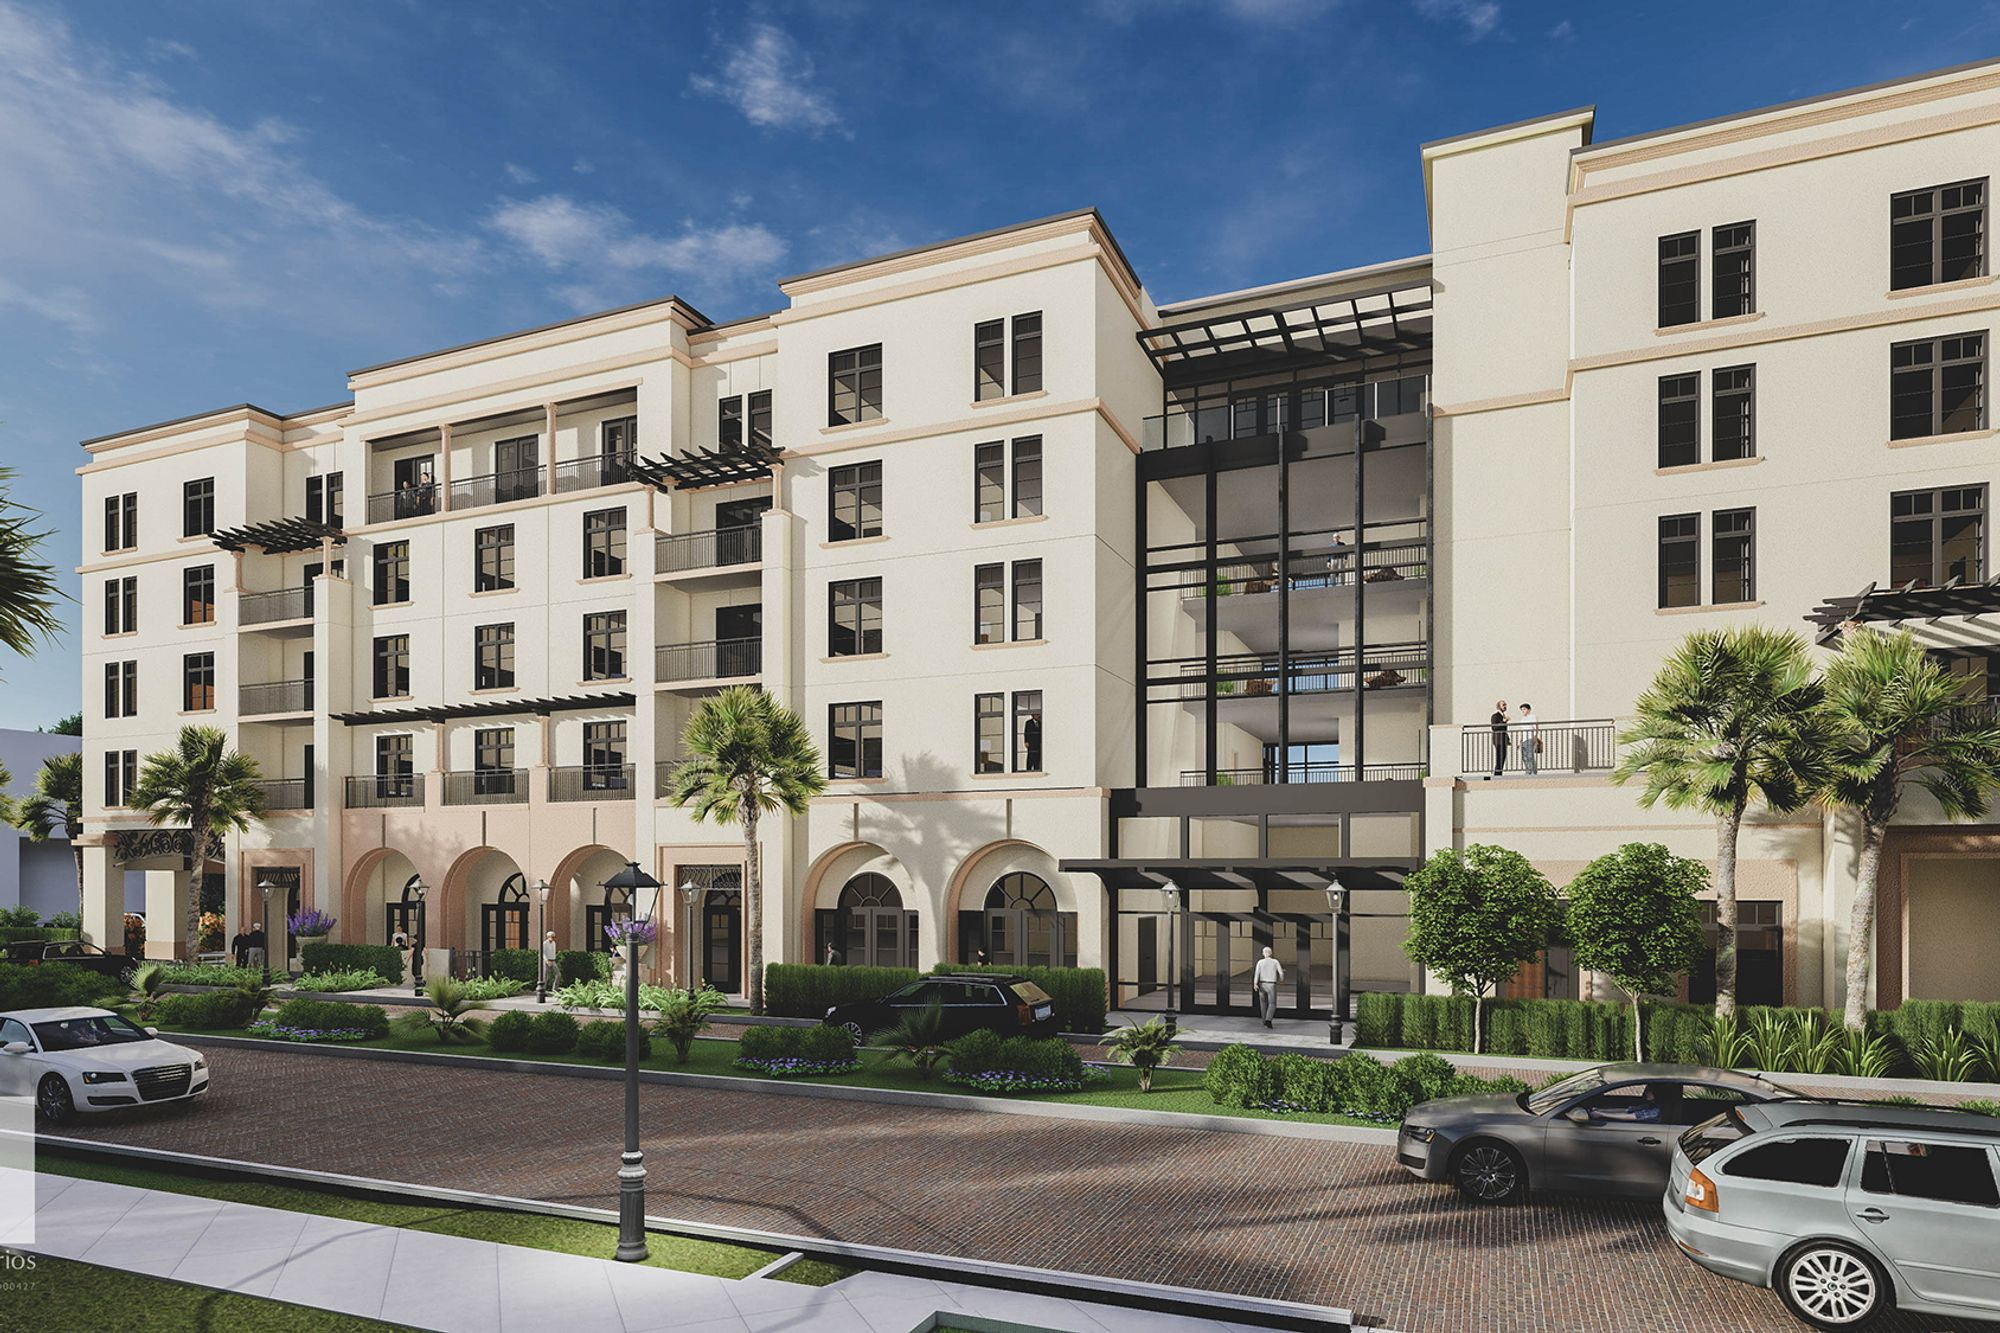 Rendering of the front exterior of the new Alfond Inn expansion.